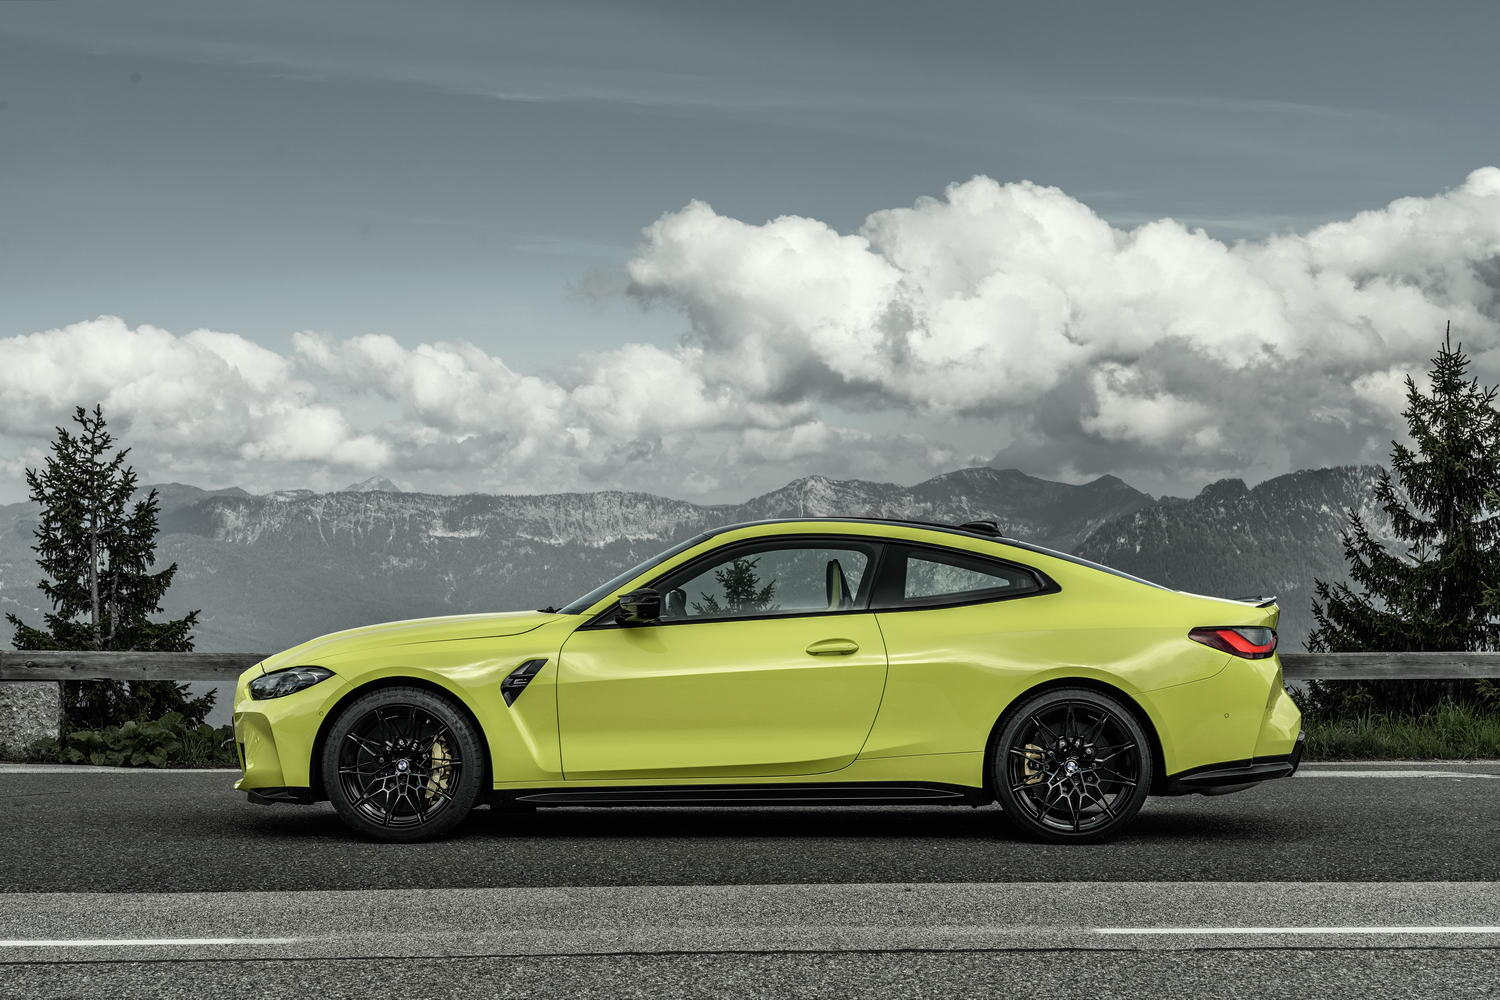 2021 BMW M4 Coupe image gallery - car and motoring news by ...